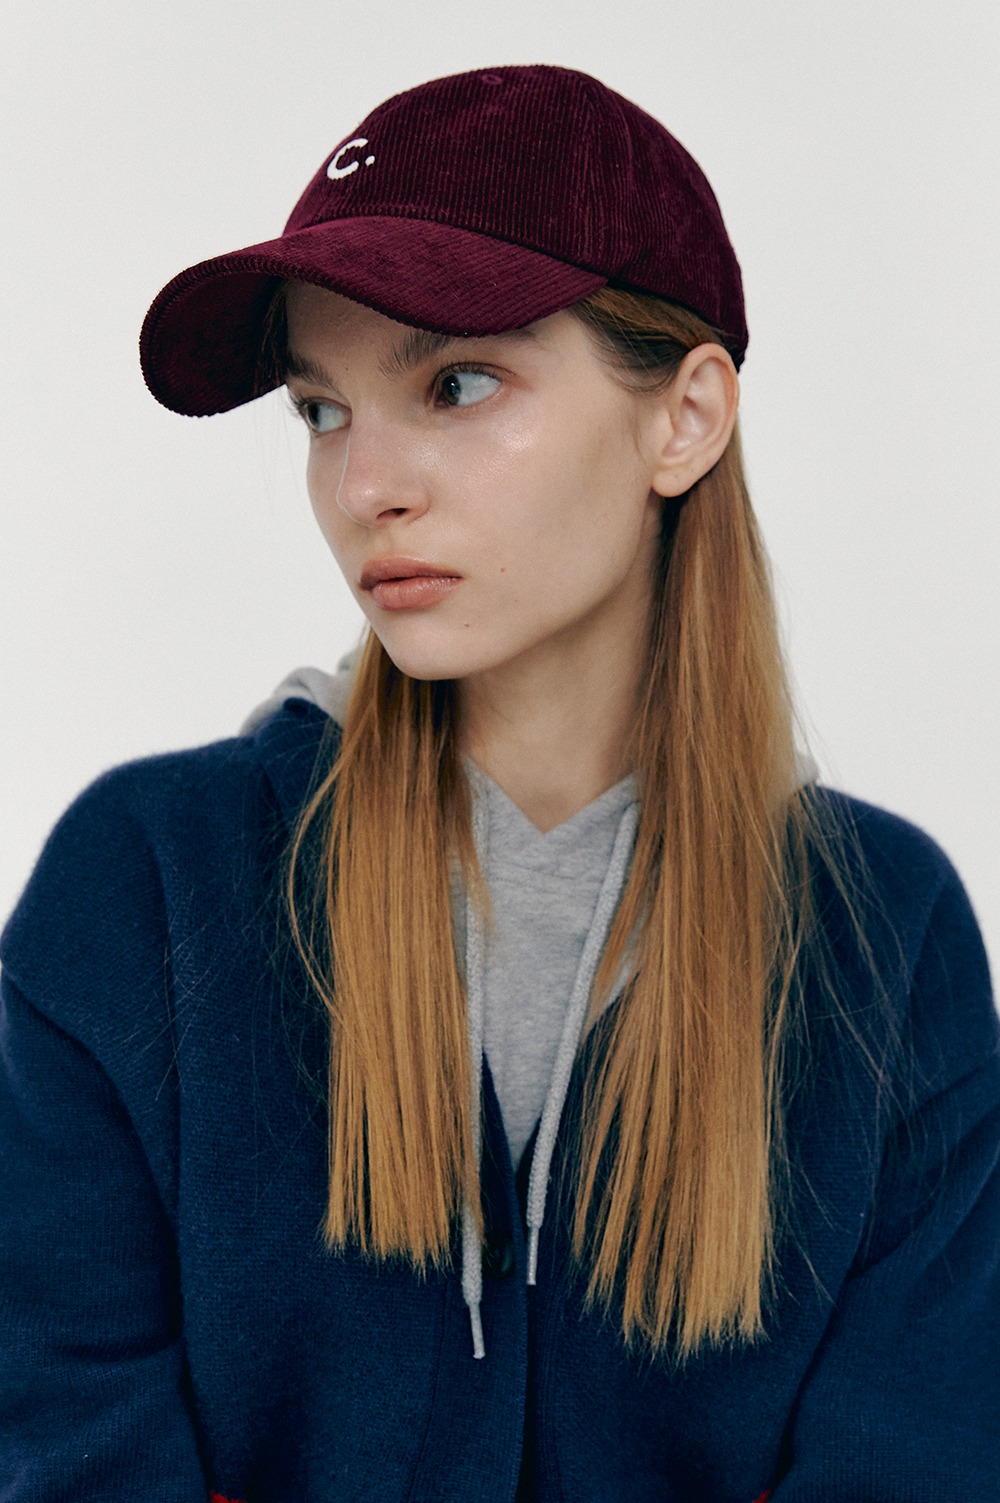 [FW20 CLOVE] Corduroy New Fit Ball Cap (Burgundy)